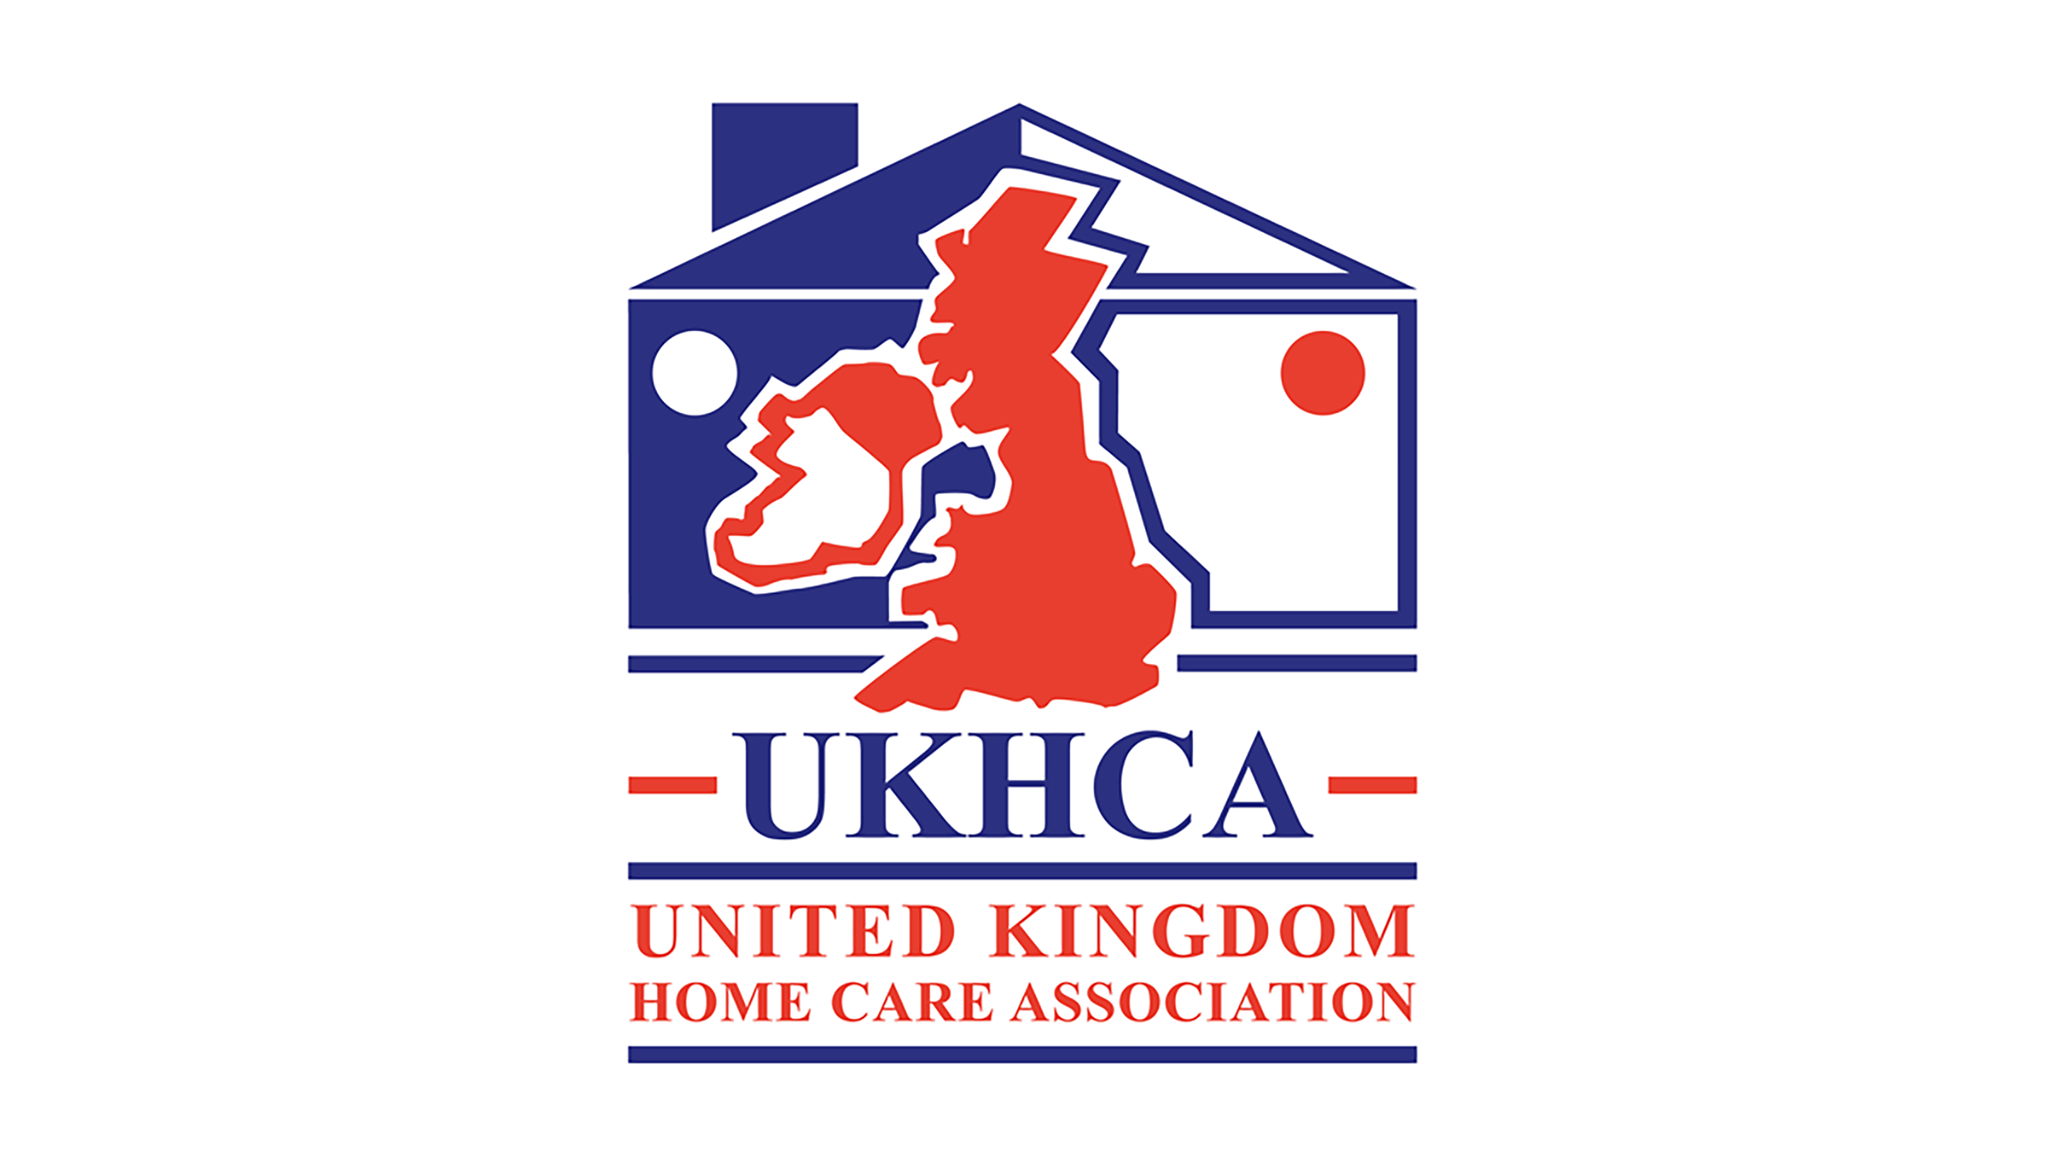 United Kingdom Homecare Association (UKHCA)